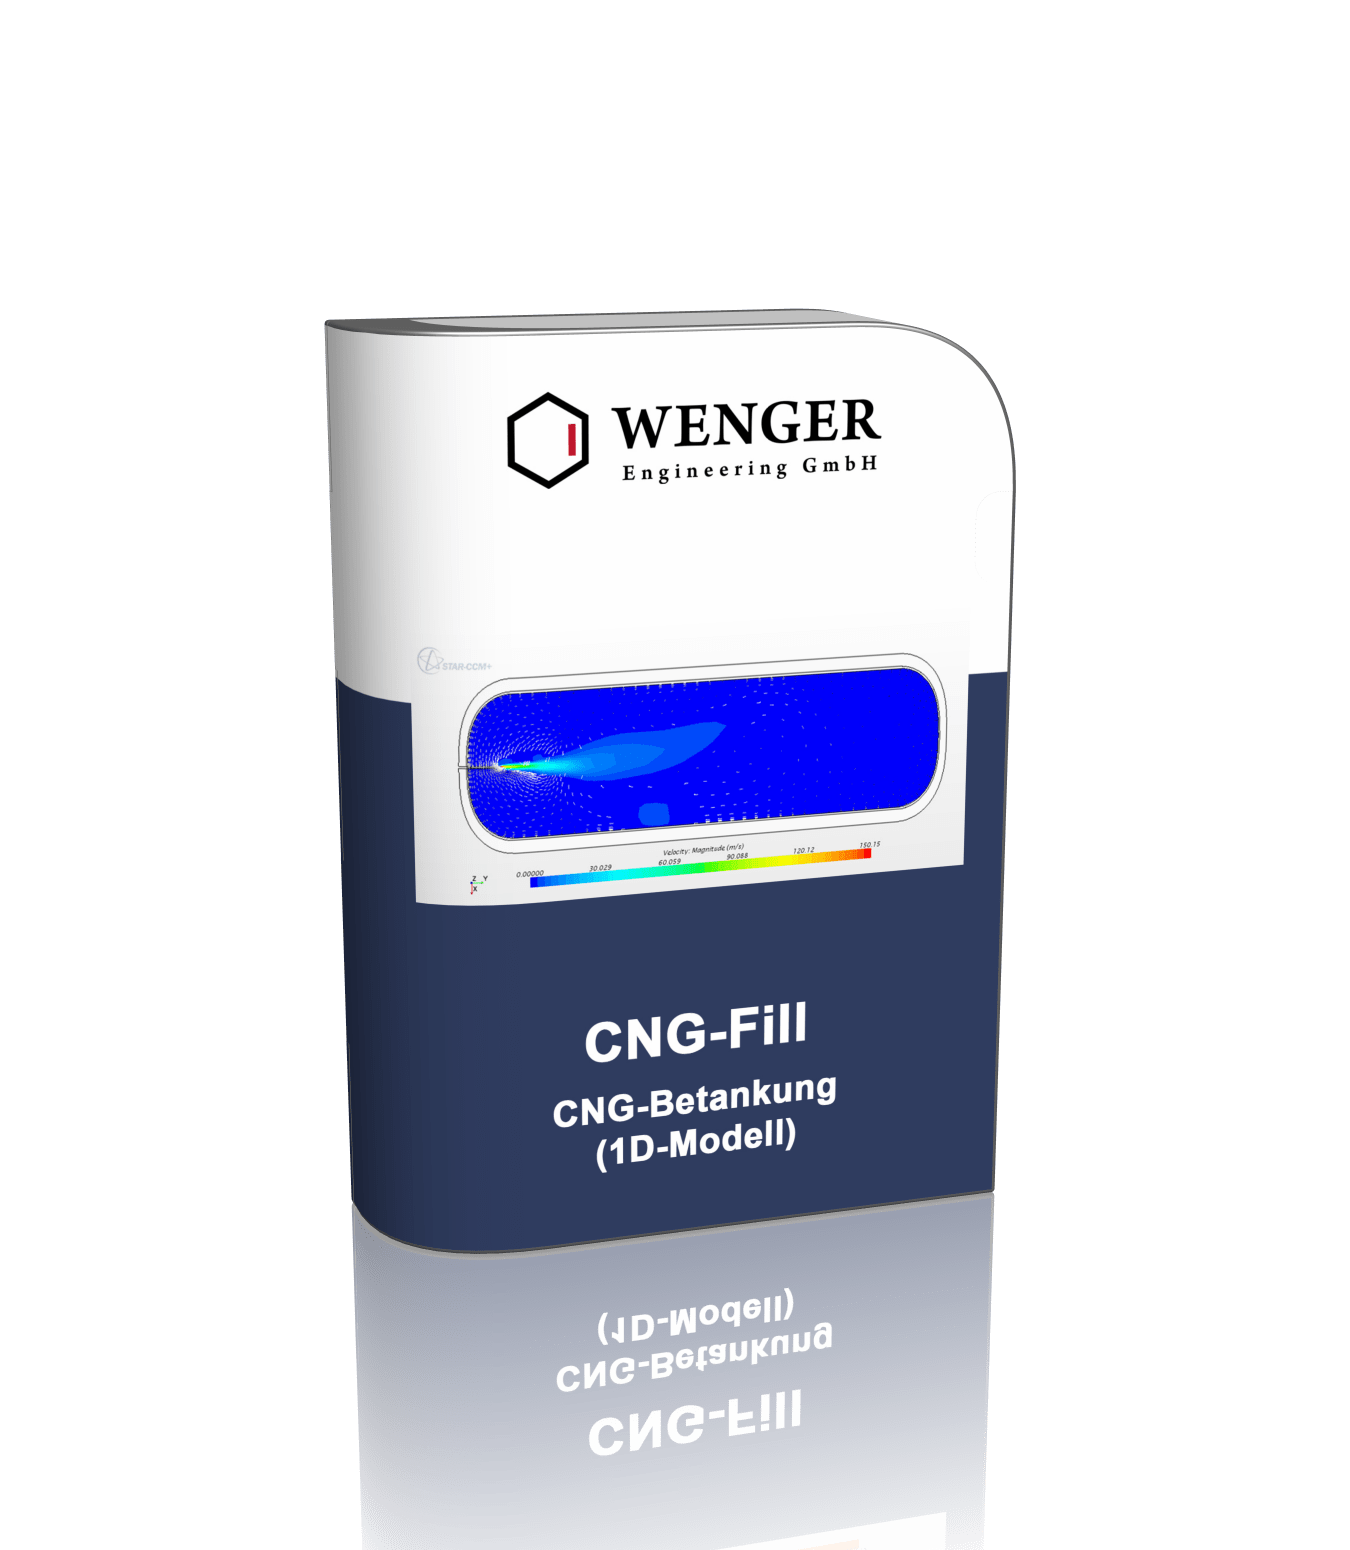 CNG-Fill